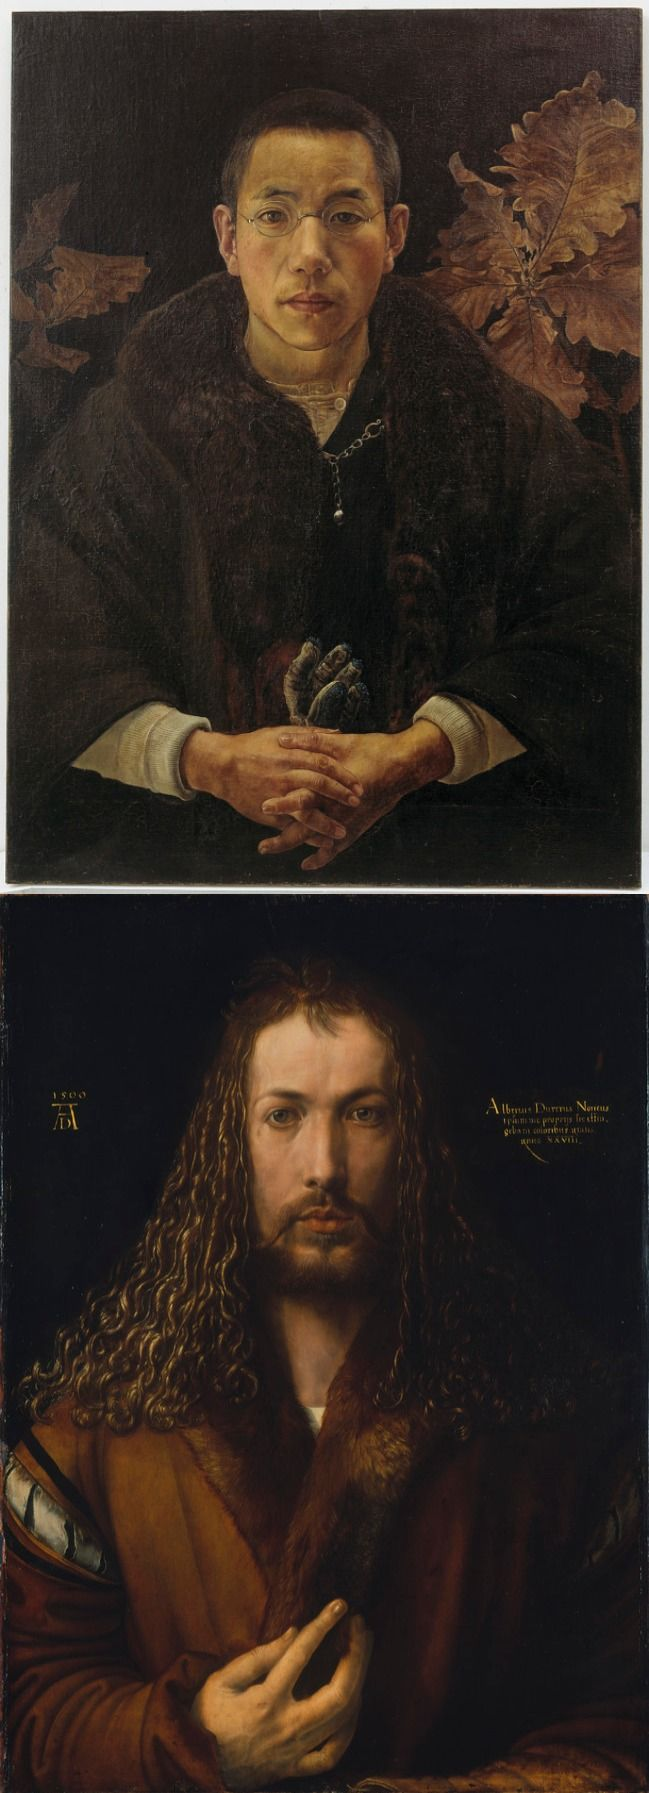 The 1917 self-portrait of Kohno Michisei in our collection was modeled after Albrecht Durer's 1500 self-portrait (bottom). Look at the colors, shapes, and lines of the two portraits. How are they similar? What are the artists trying to convey with their portraits? Top: S1998.115 http://www.asia.si.edu/collections/singleObject.cfm?ObjectNumber=S1998.115 Bottom: http://www.pinakothek.de/en/albrecht-duerer/self-portrait-fur-trimmed-robe #FSMiniLesson